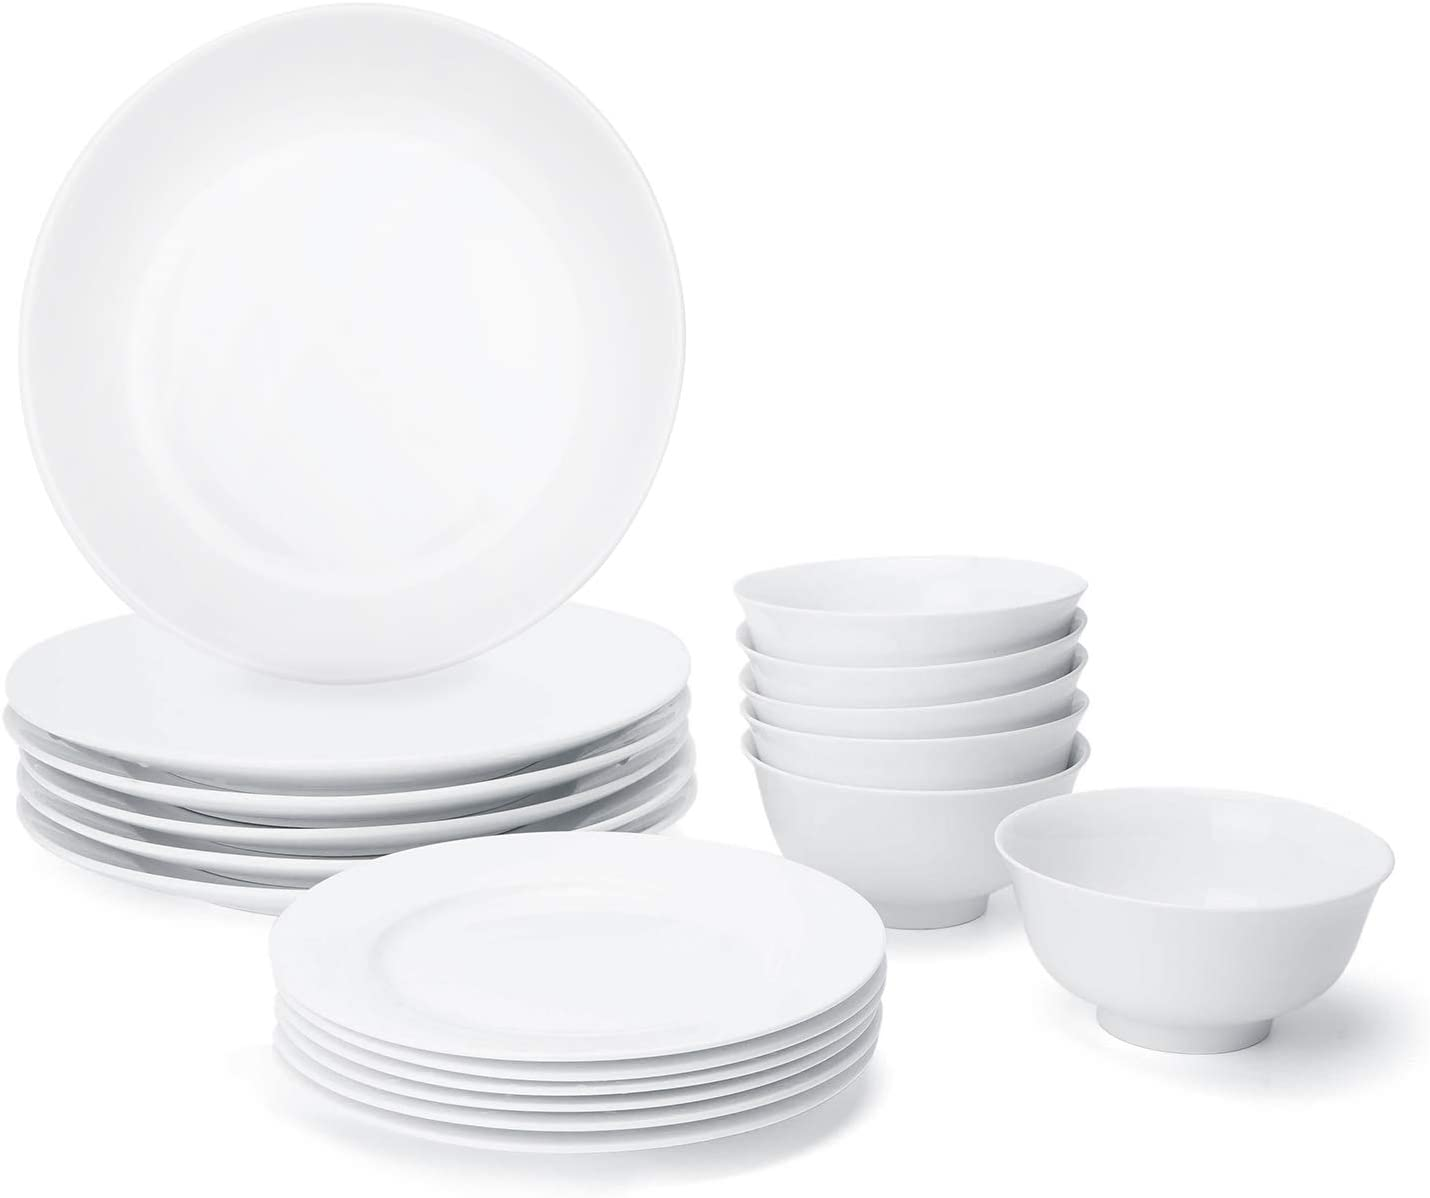 JRFY 18-Piece White Kitchen Dinnerware Set, Dishes, Bowls, Service for 6 (Bone China)